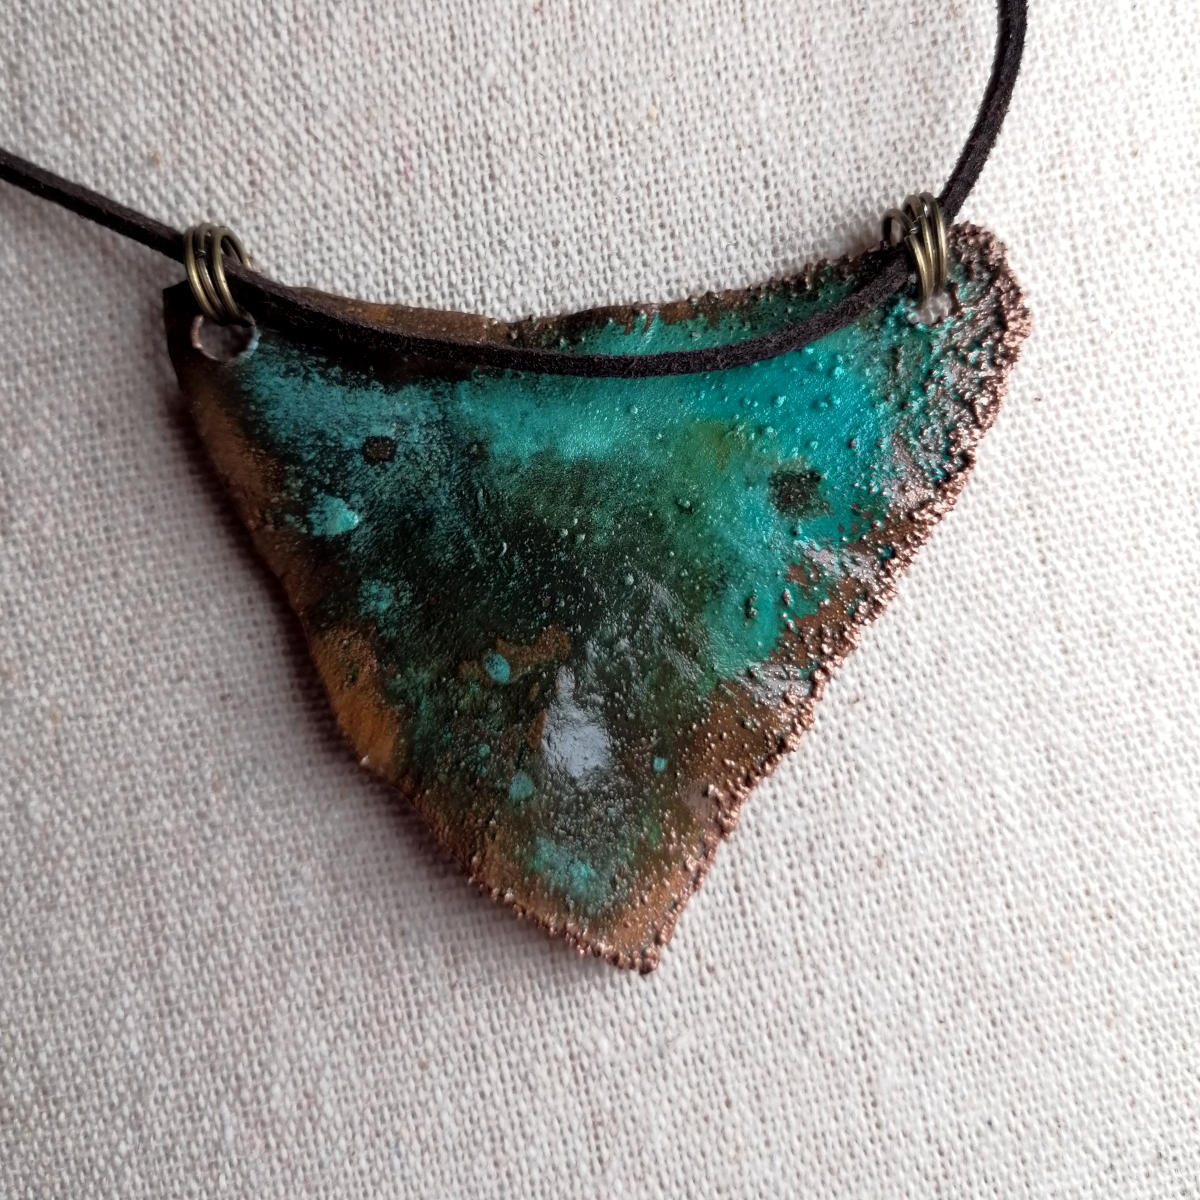 Electroformed pendant with colourful patina, copper, Salzburg